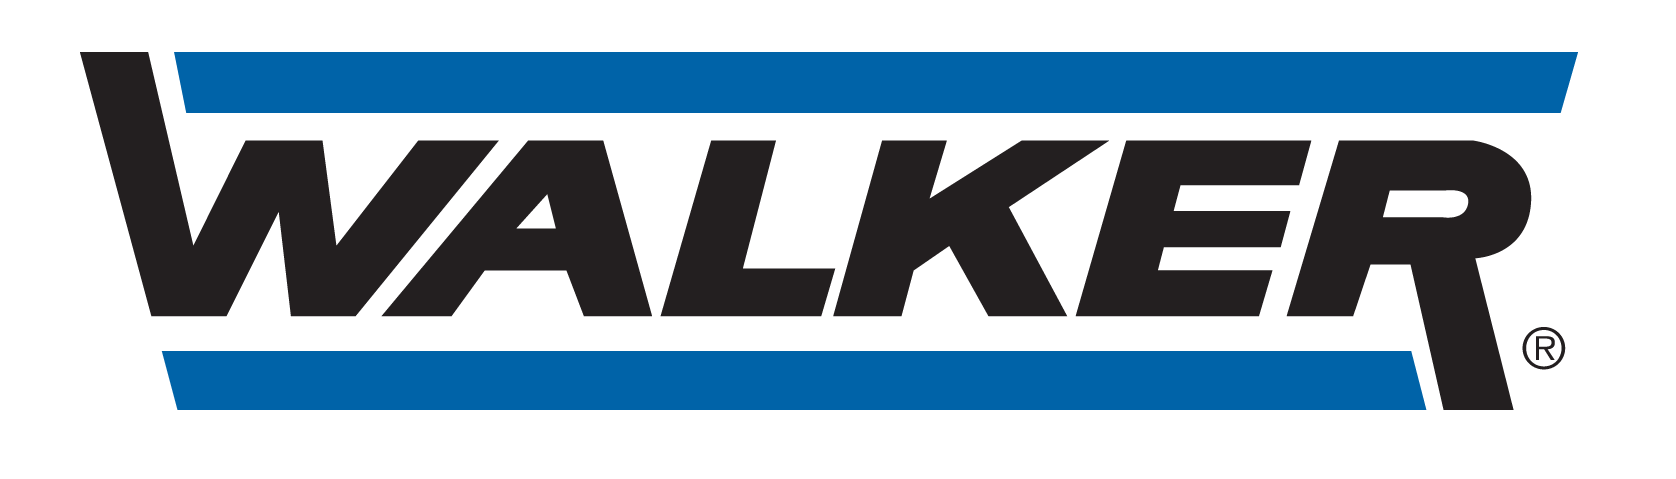 GARAGE PORTAL - logo Walker